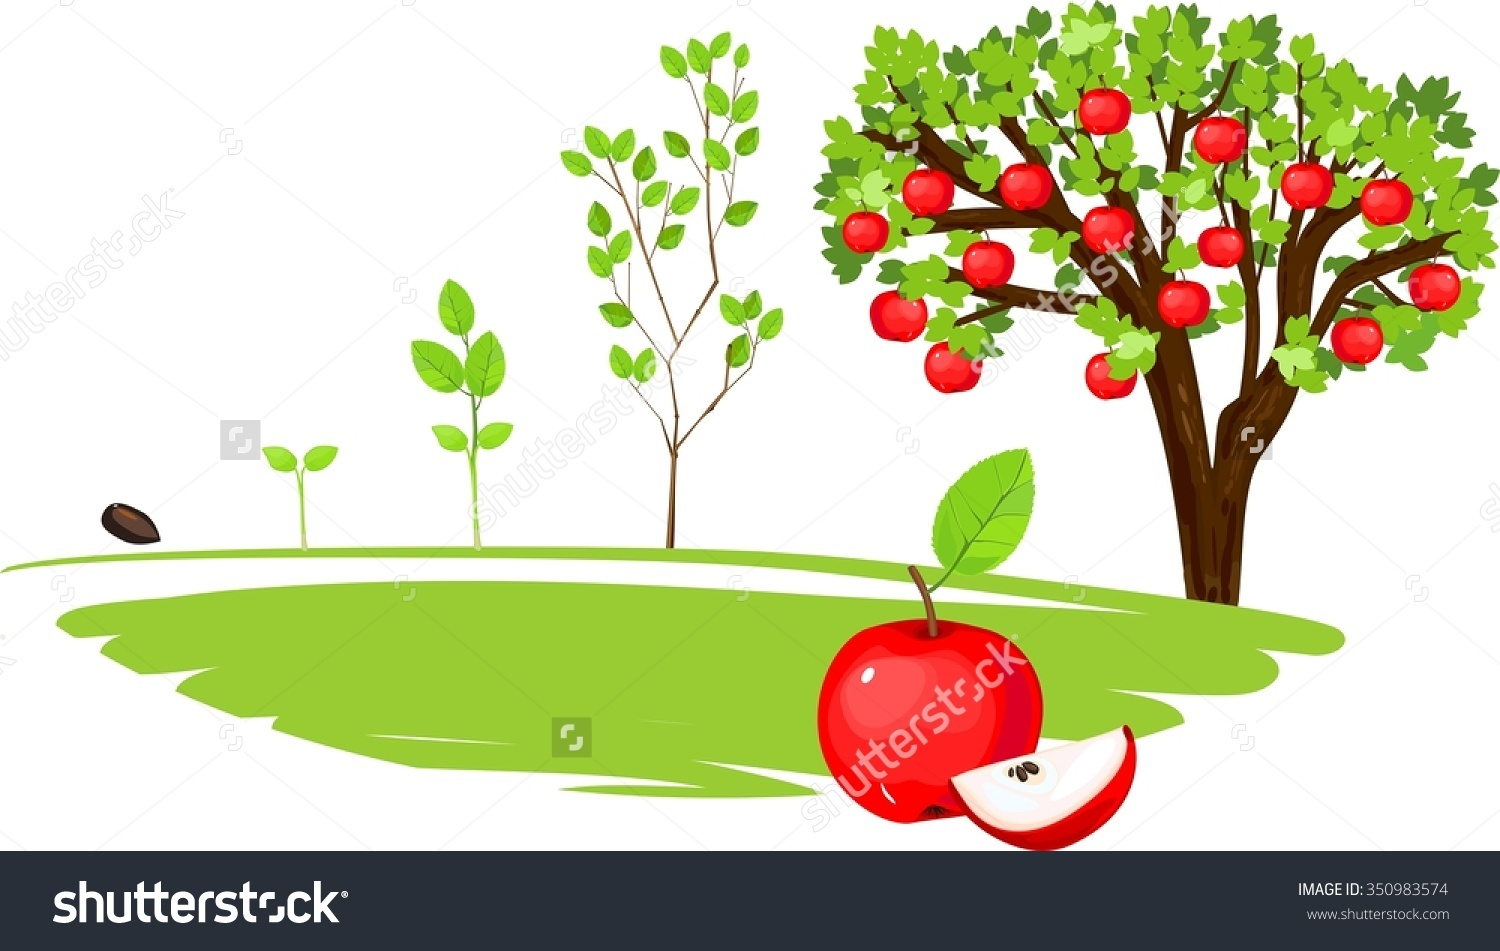 Apple tree cycle clipart svg freeuse library Life Cycle Apple Tree Stock Illustration 350983574 - Shutterstock svg freeuse library